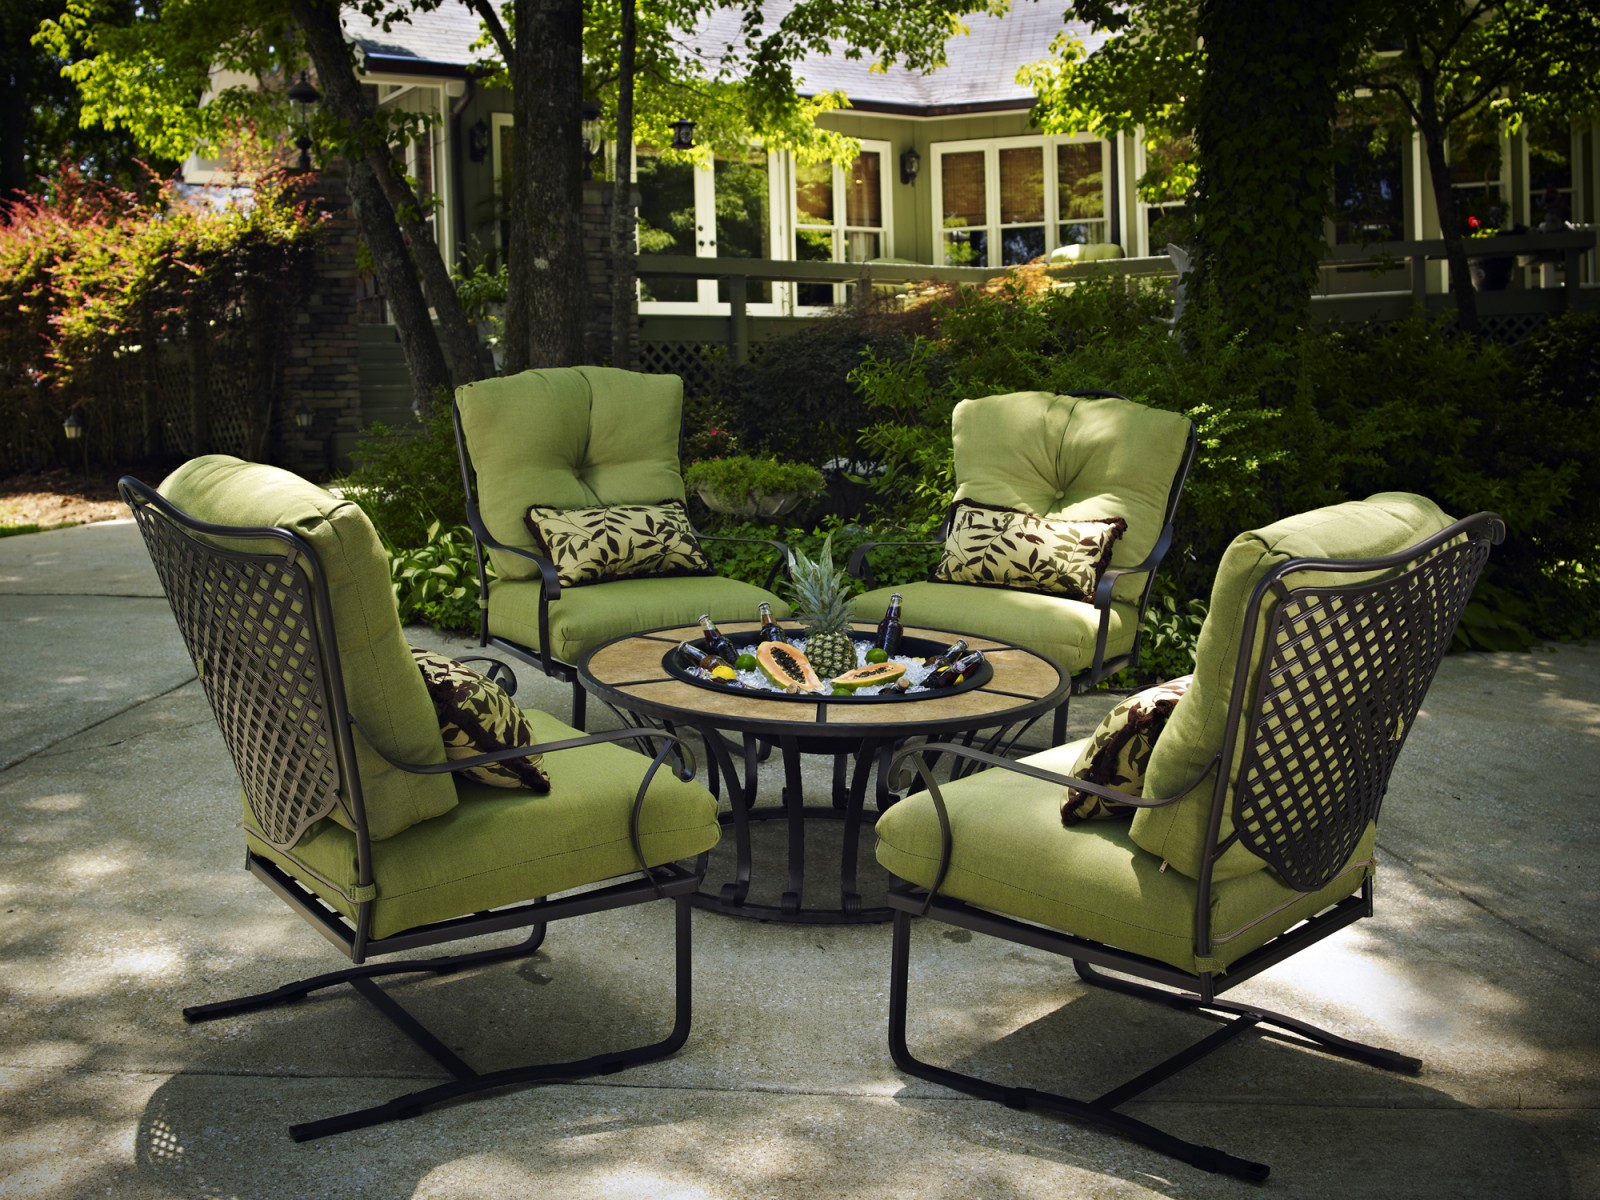 Hot Tubs, Fireplaces, Patio Furniture